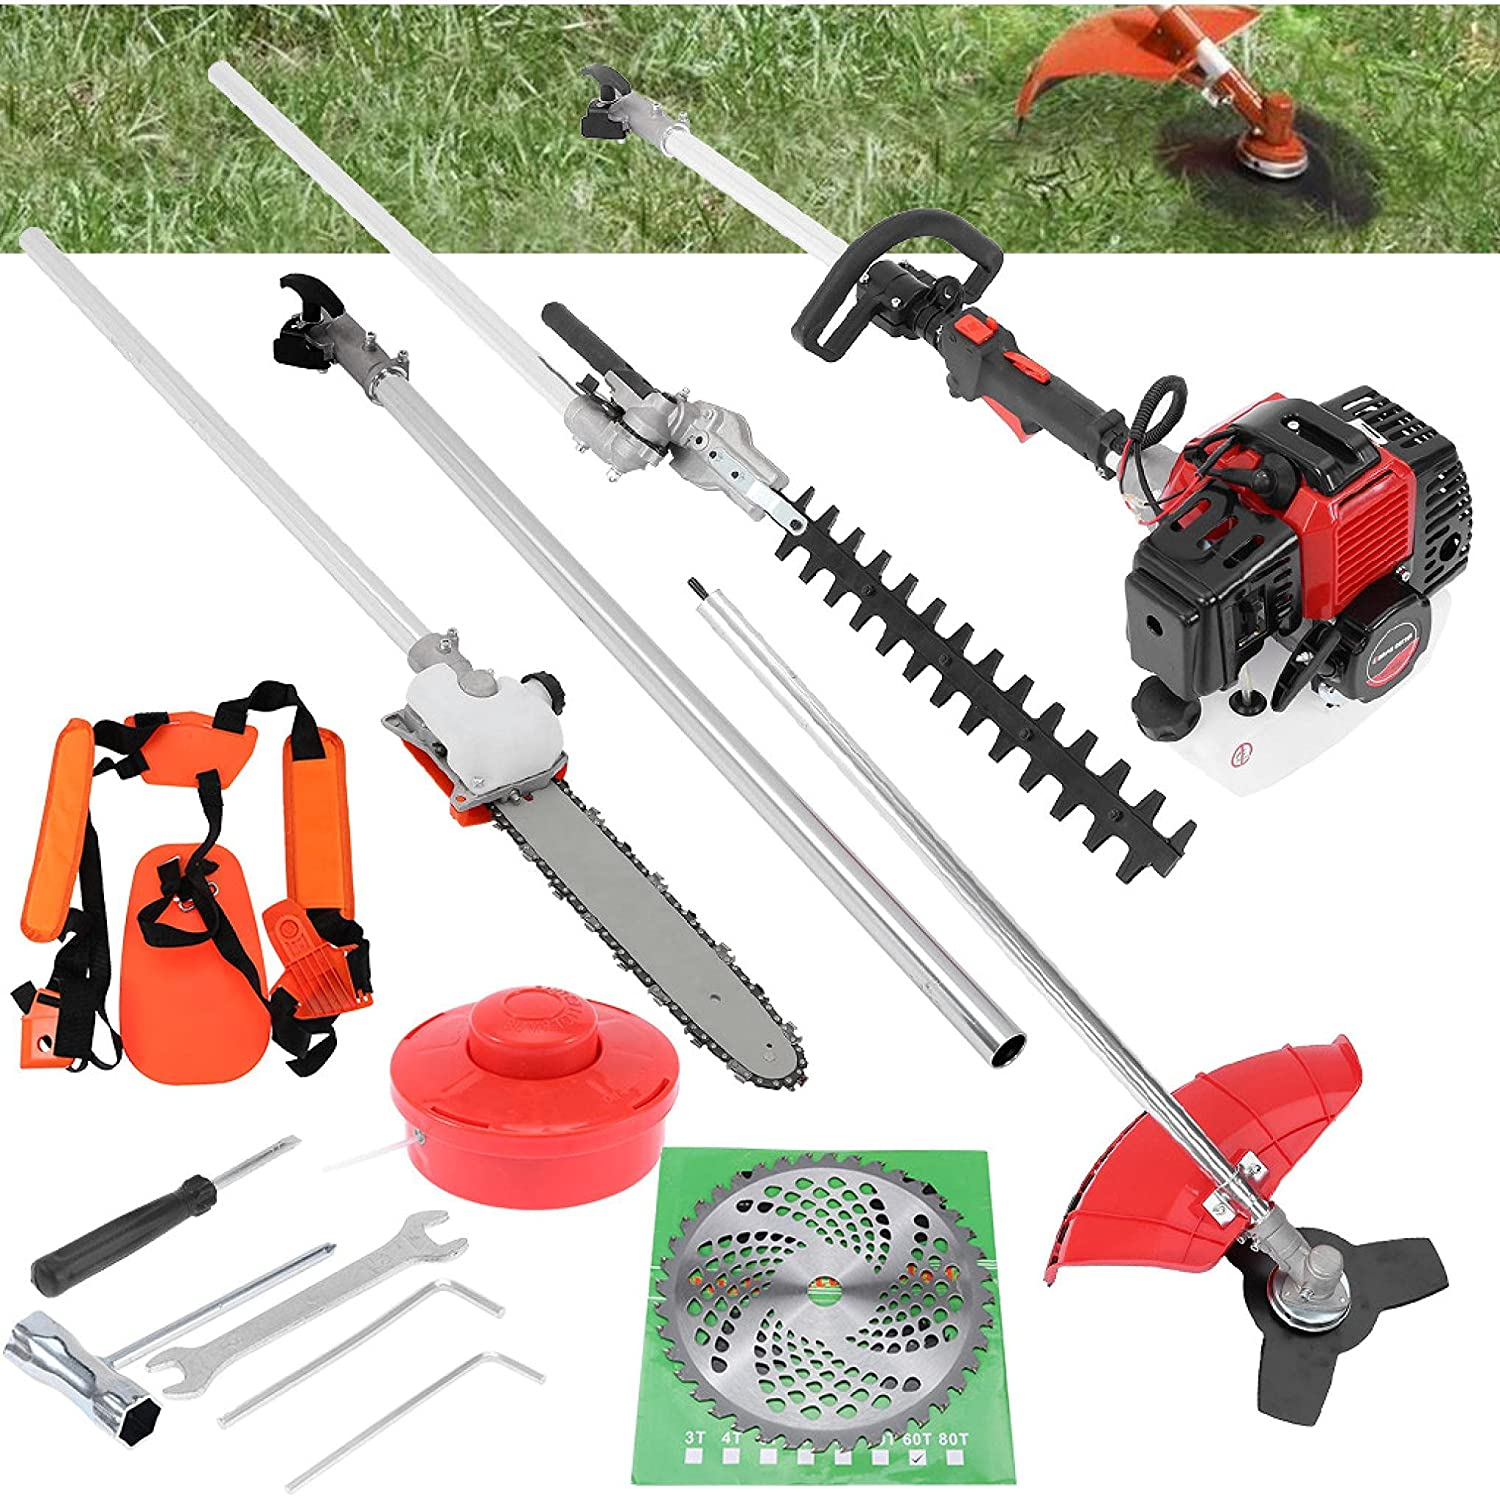 5 in 1 52cc Petrol Hedge Cutter Large-scale sale Genuine Free Shipping Trimmer Chainsaw Pole Saw Brush